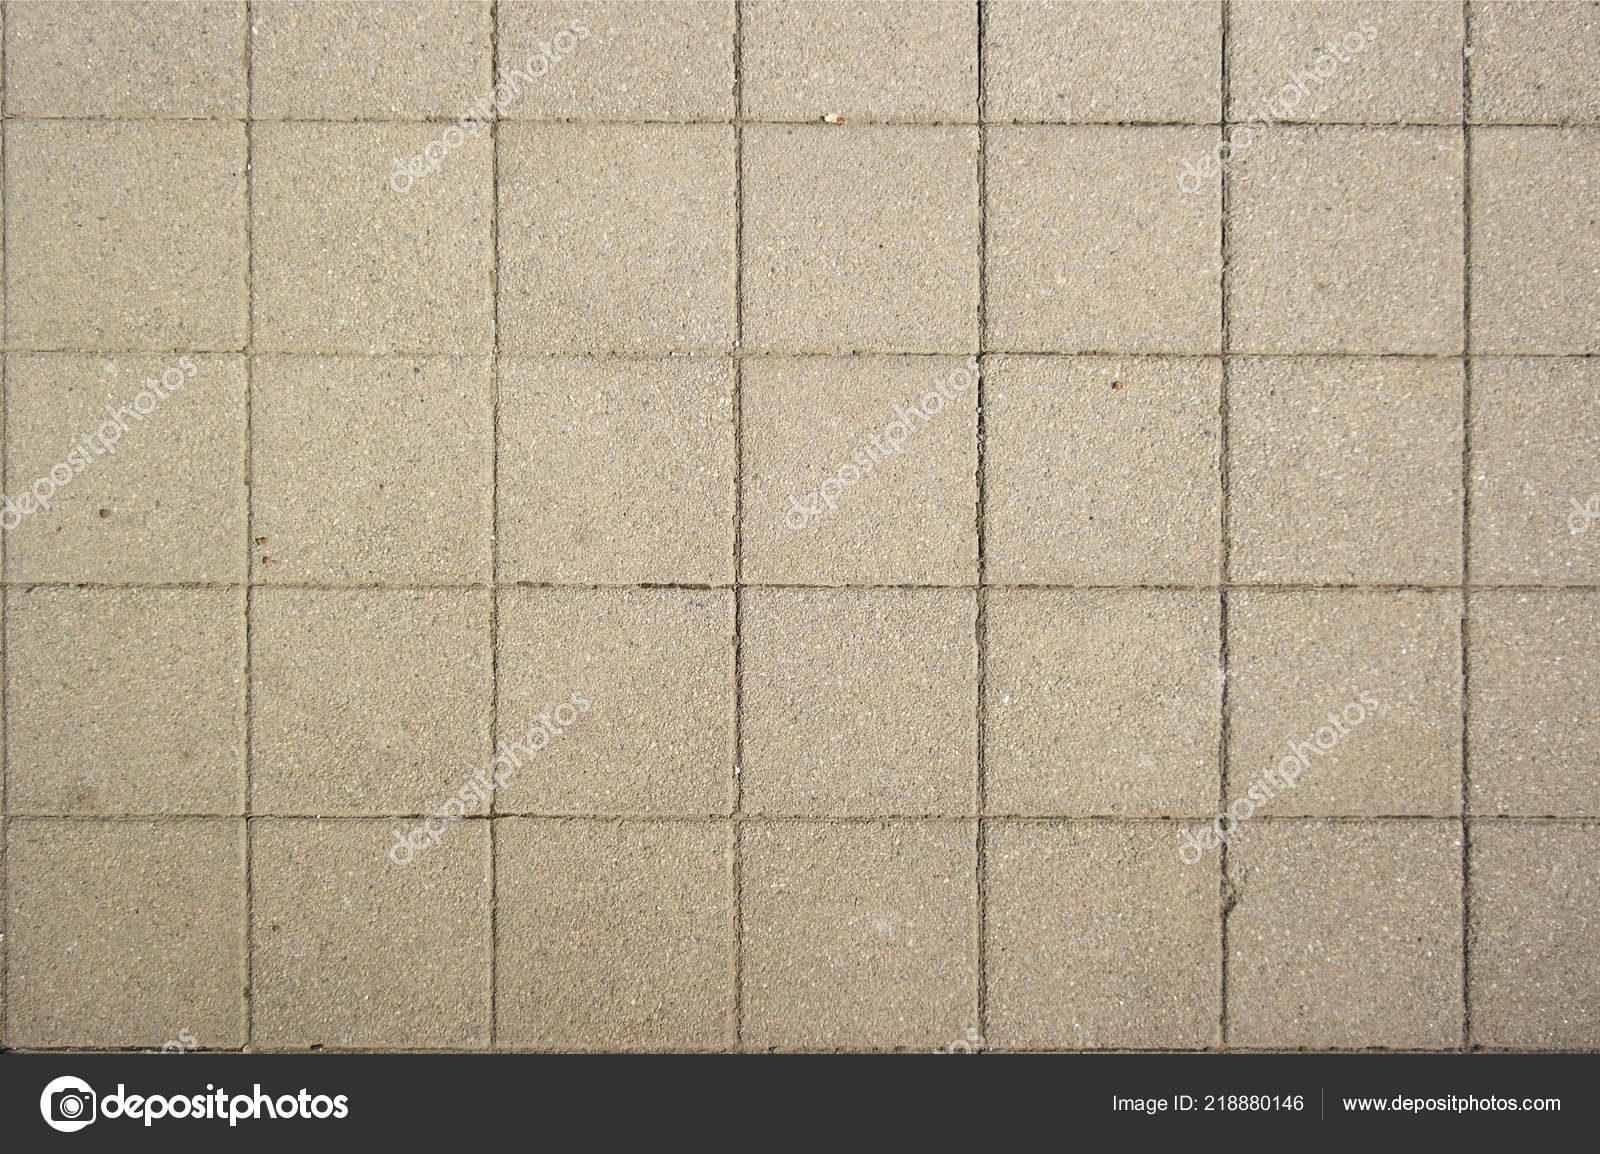 White tiles textures background stock photo picture and royalty